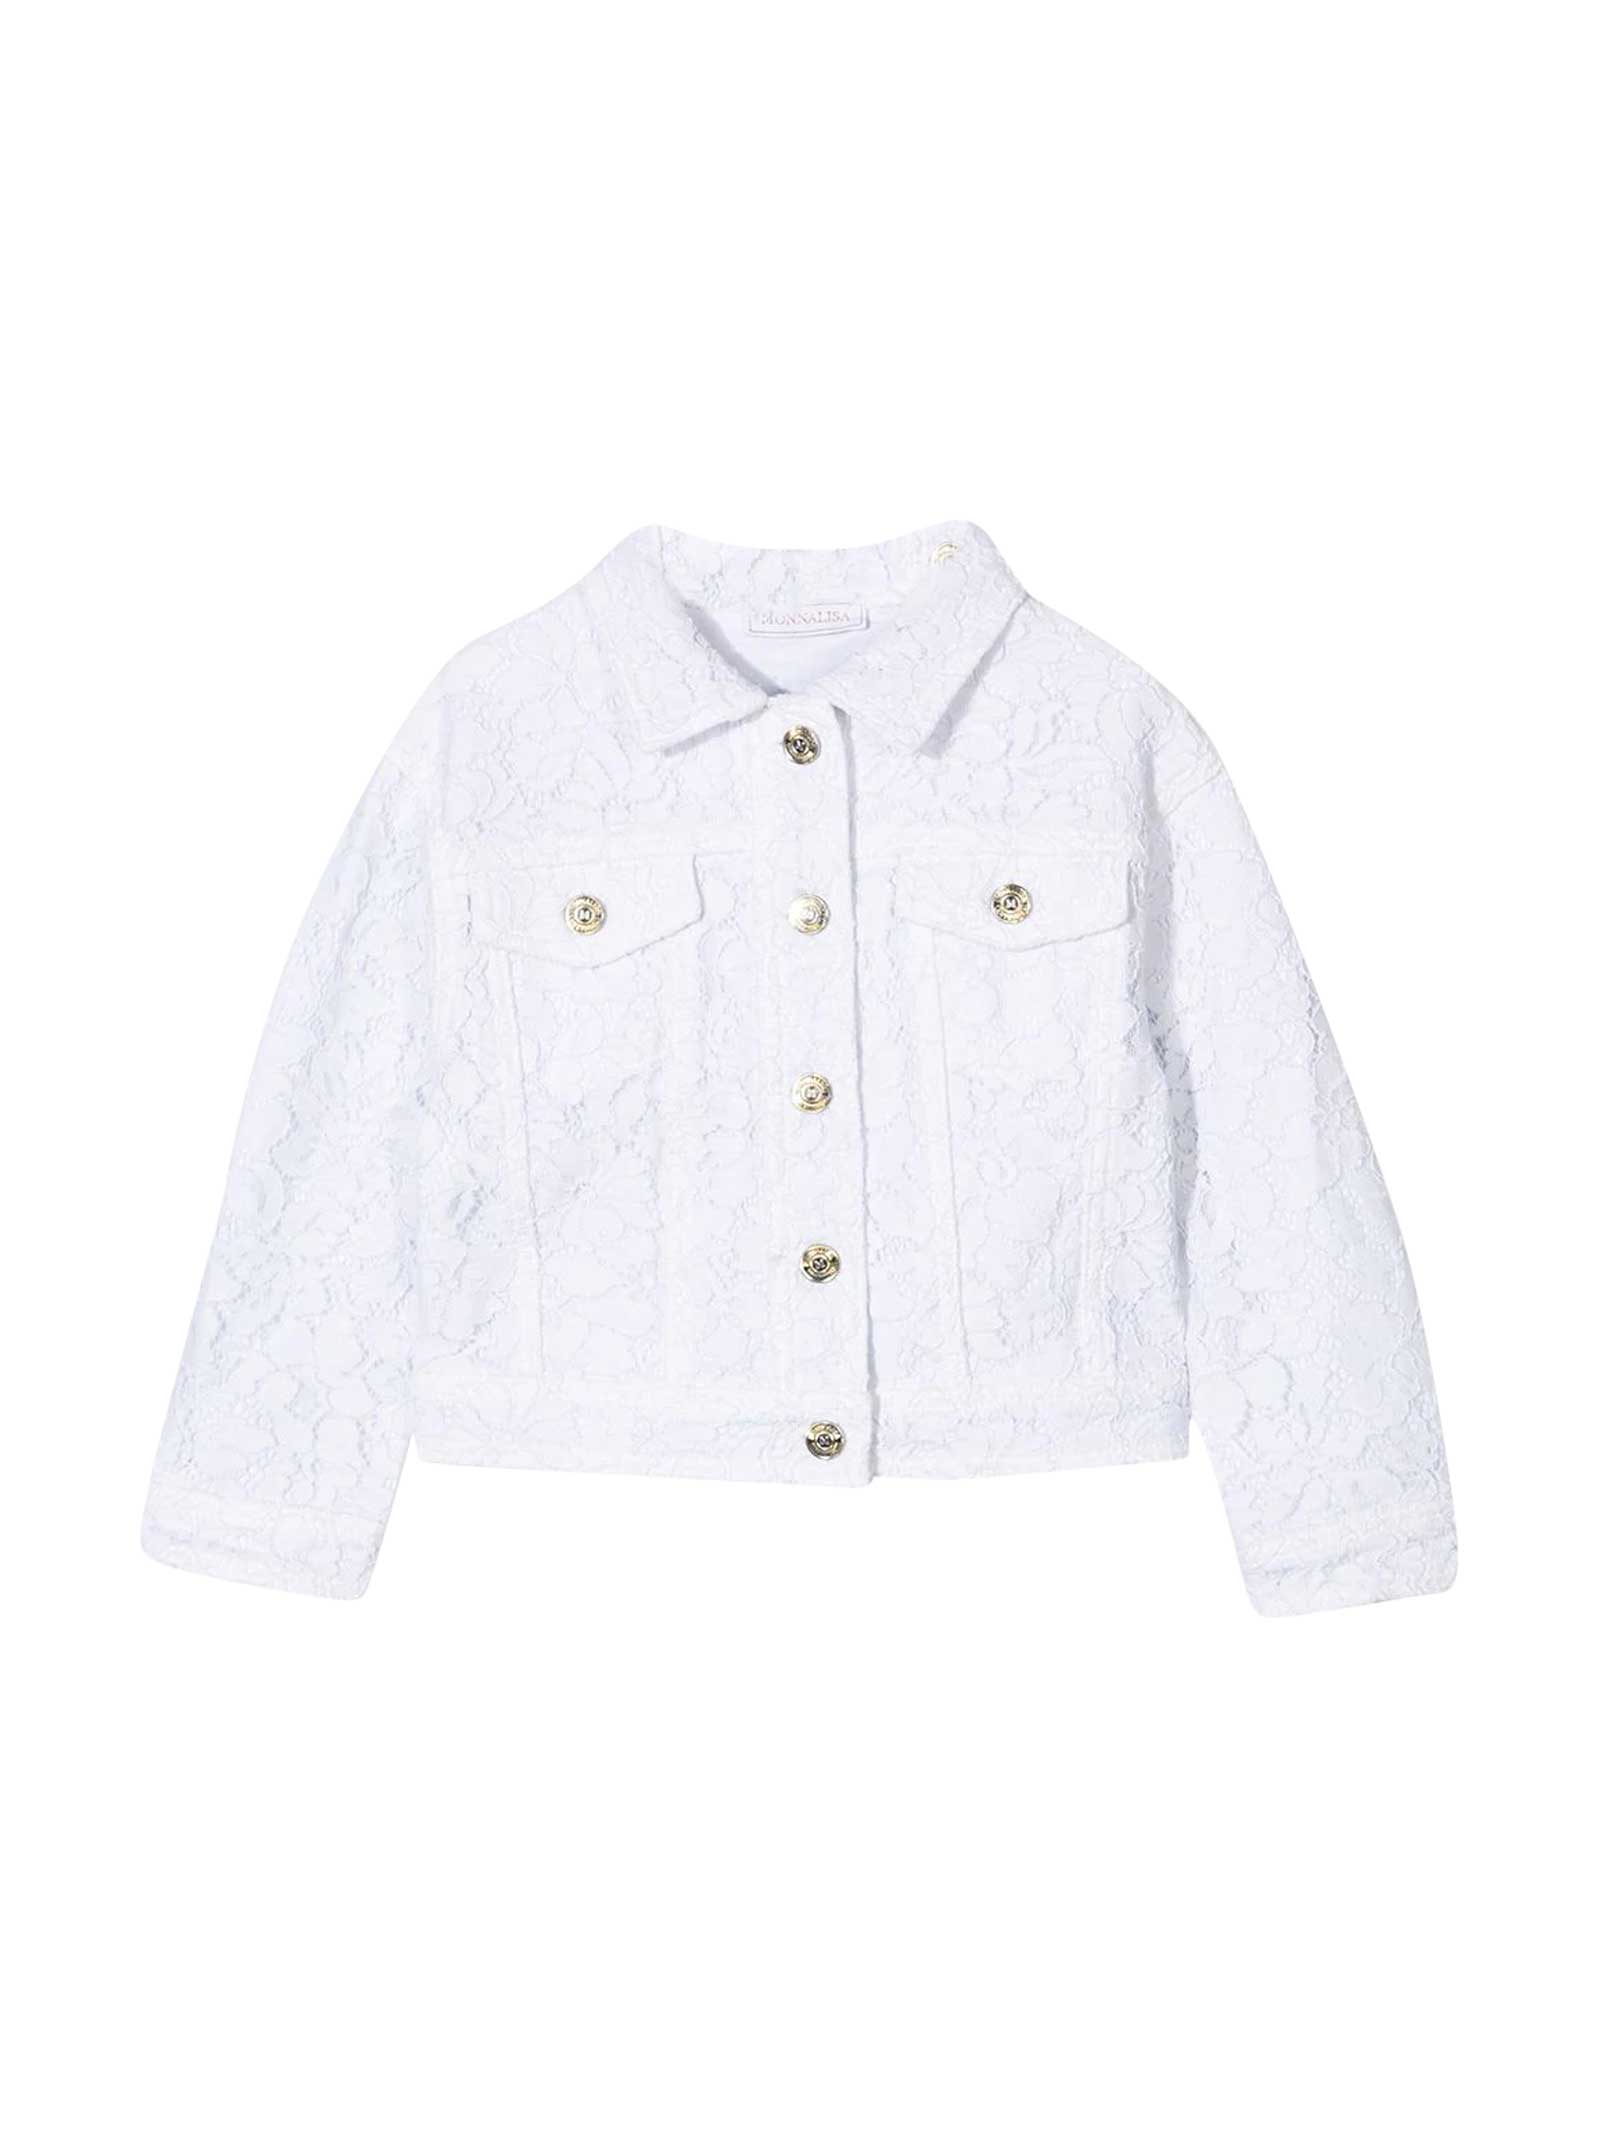 Monnalisa DENIM JACKET WITH EMBROIDERY